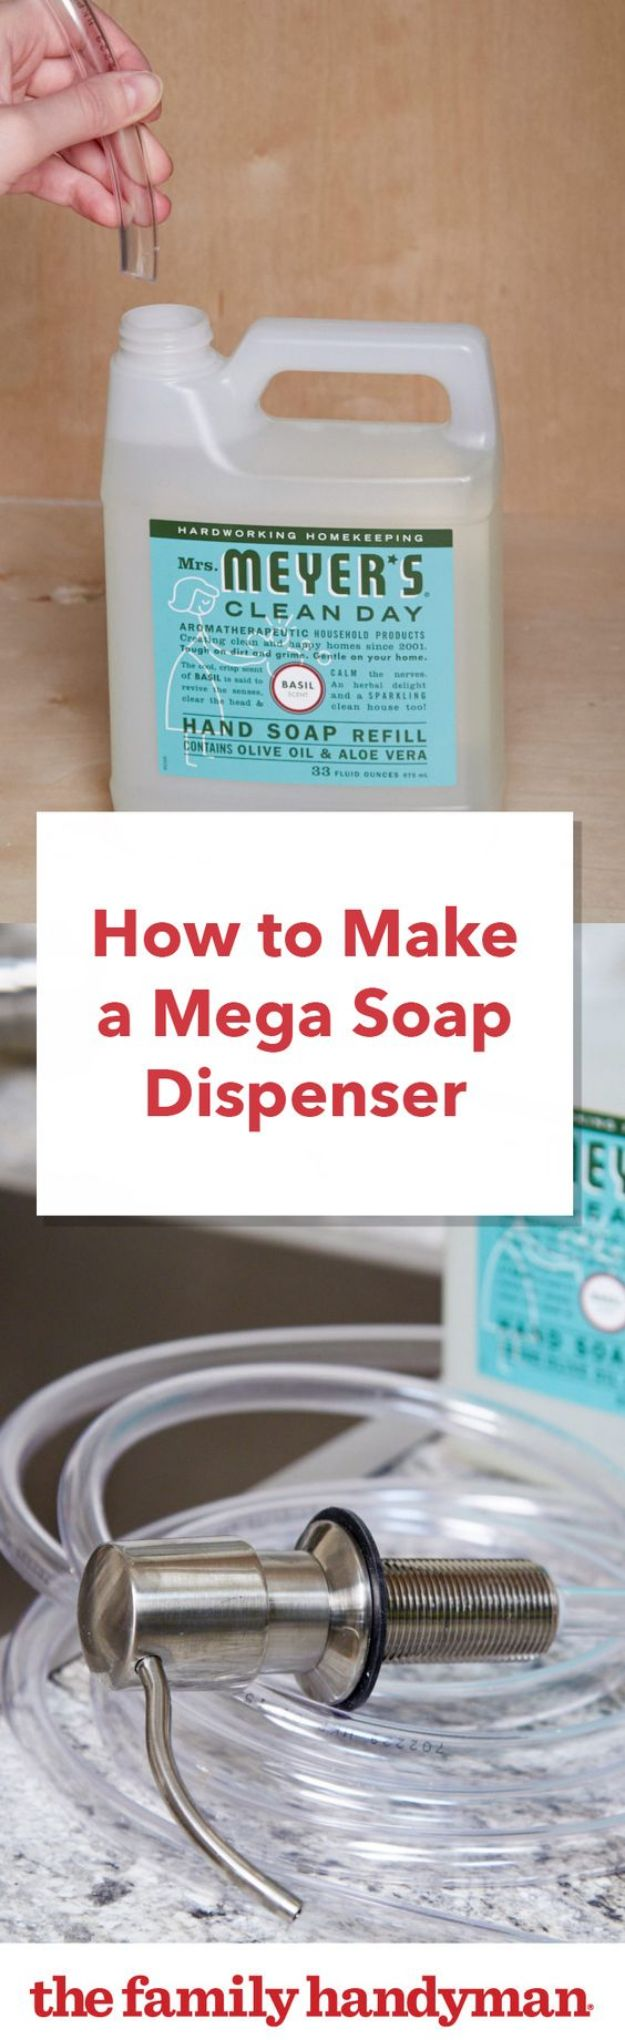 DIY Soap Dispensers - Make a Mega Soap Dispenser - Easy Soap Dispenser Ideas to Make for Kitchen, Bathroom - Mason Jar Idea, Cute Crafts to Make and Sell, Kids Bath Decor